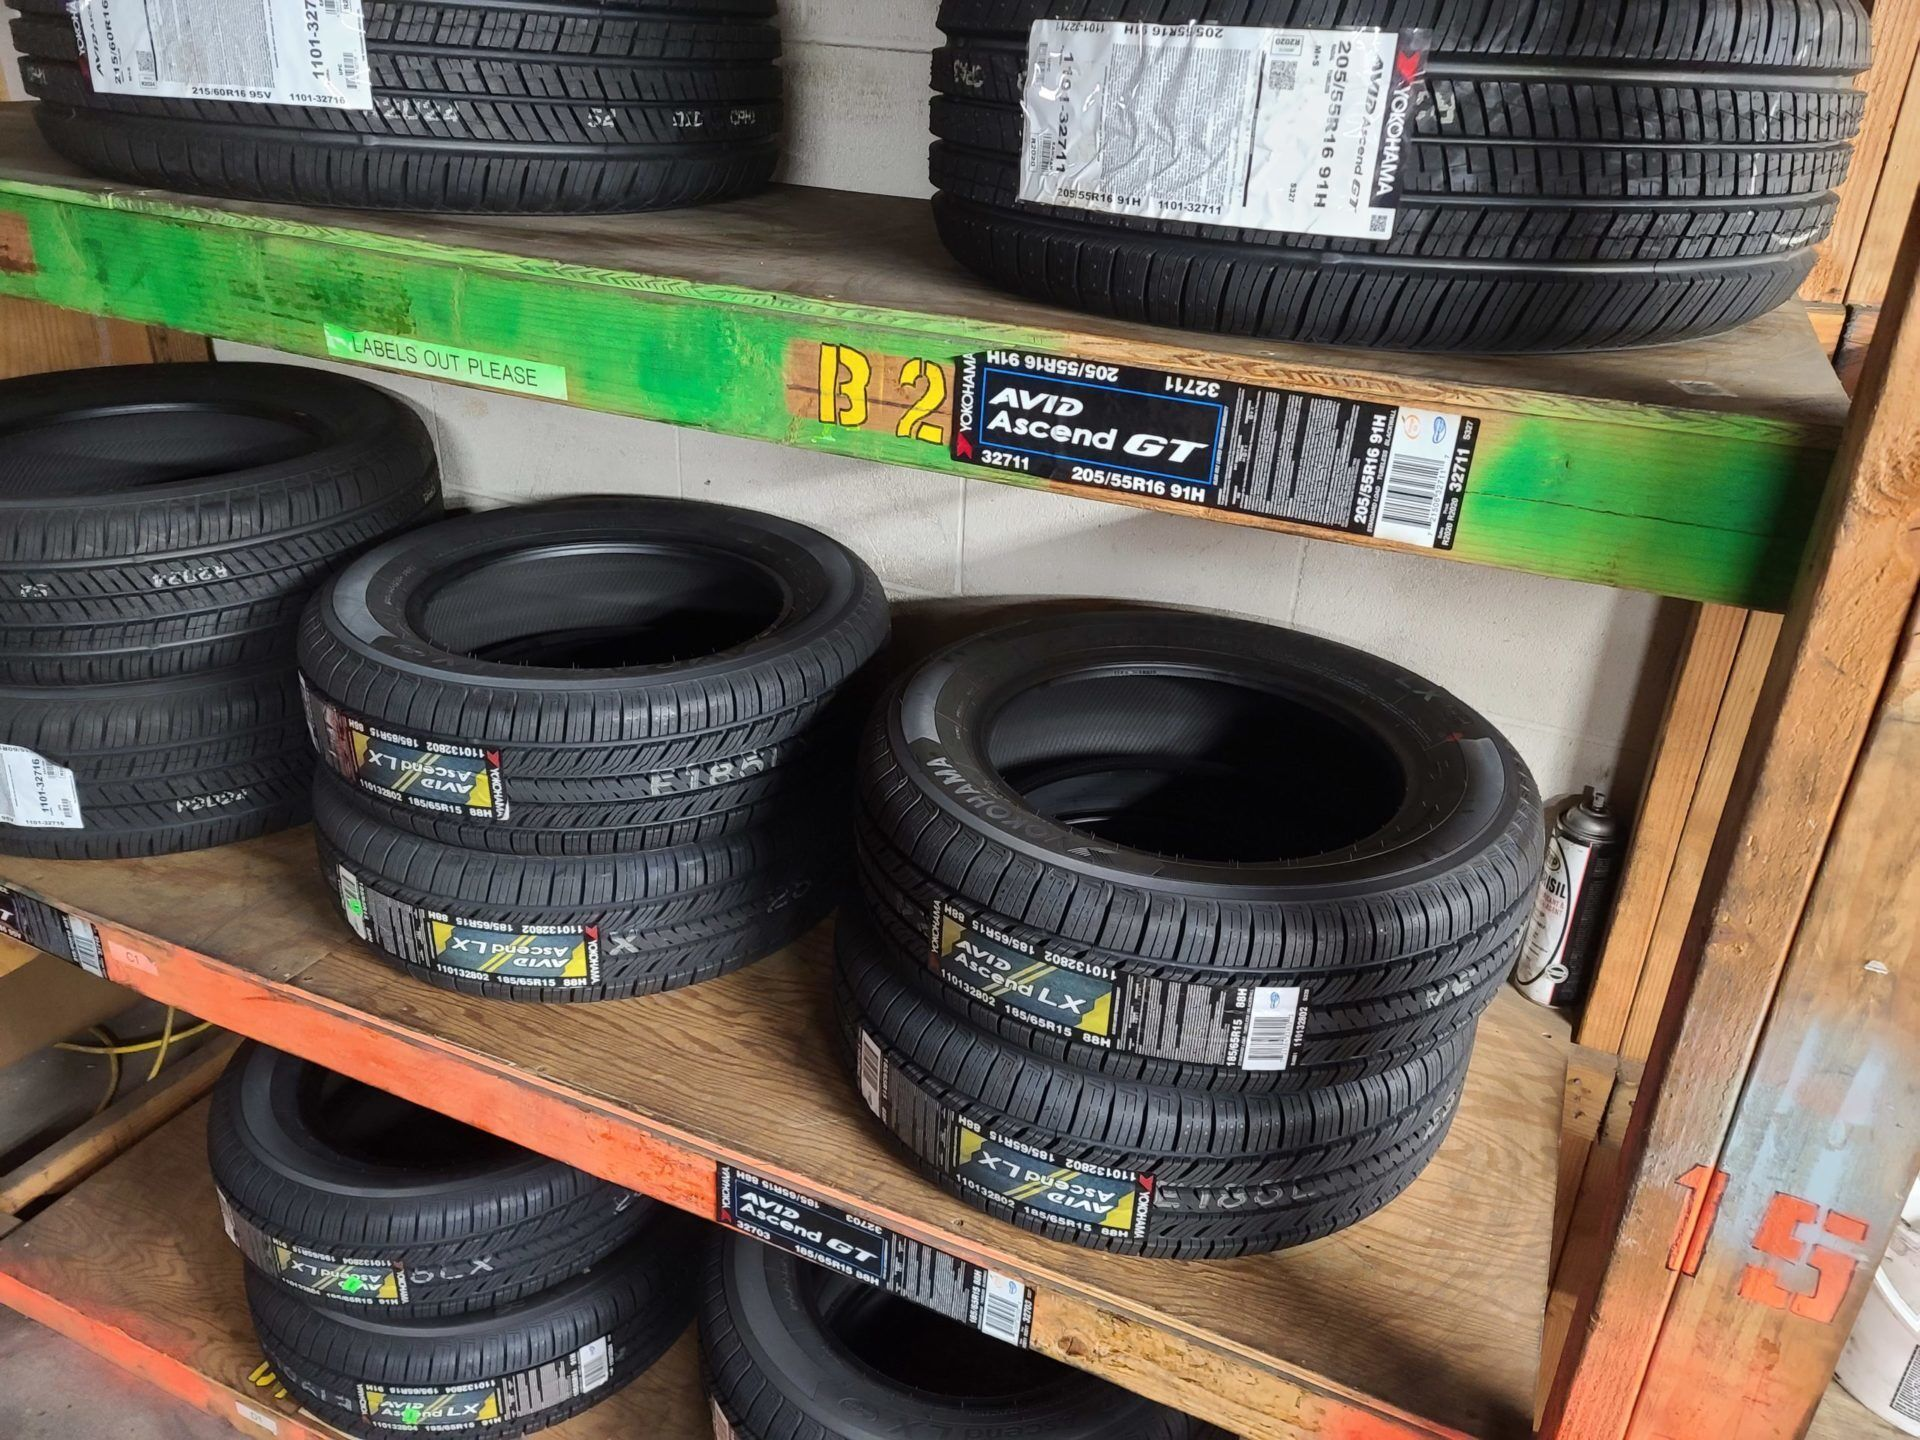 New Yokohama tires sitting on shelves